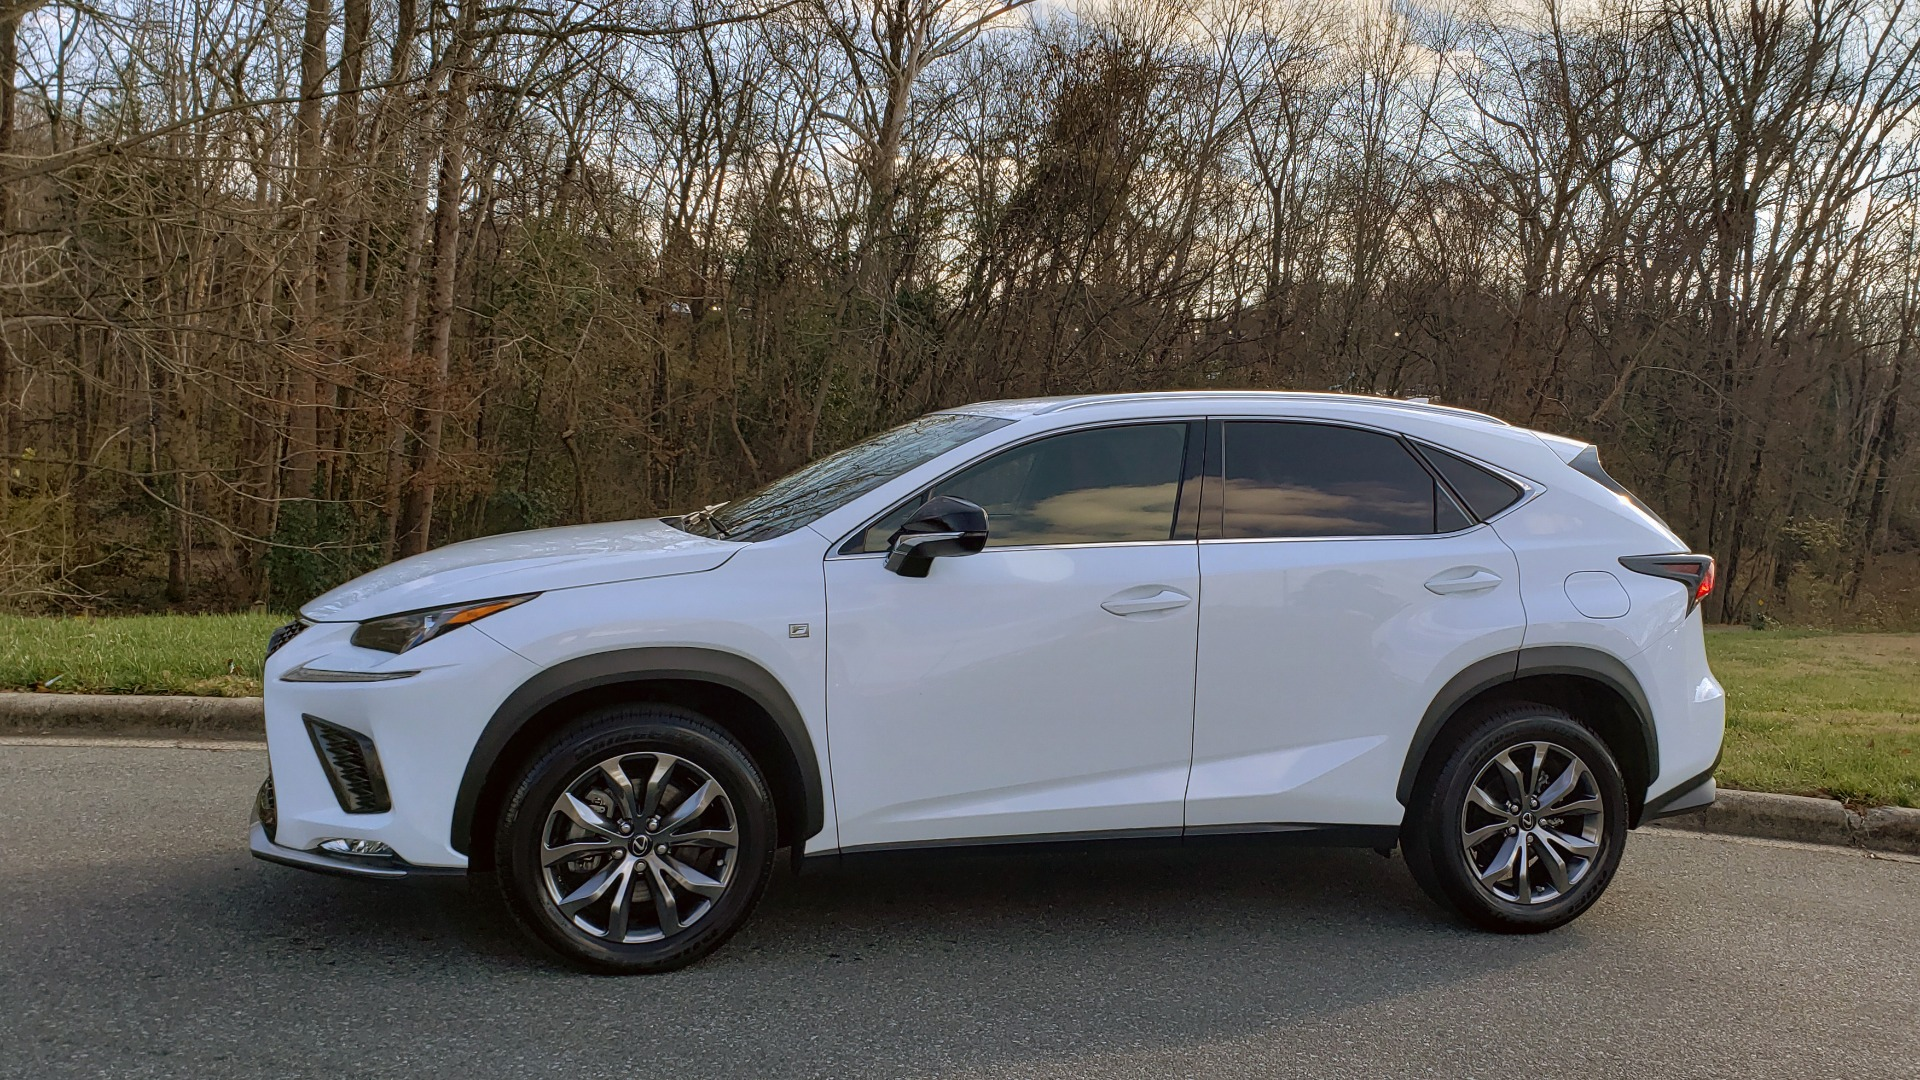 Used 2019 Lexus NX 300 F-SPORT / 2.0L TURBO / LEATHER / 18IN WHEELS / REARVIEW for sale Sold at Formula Imports in Charlotte NC 28227 2